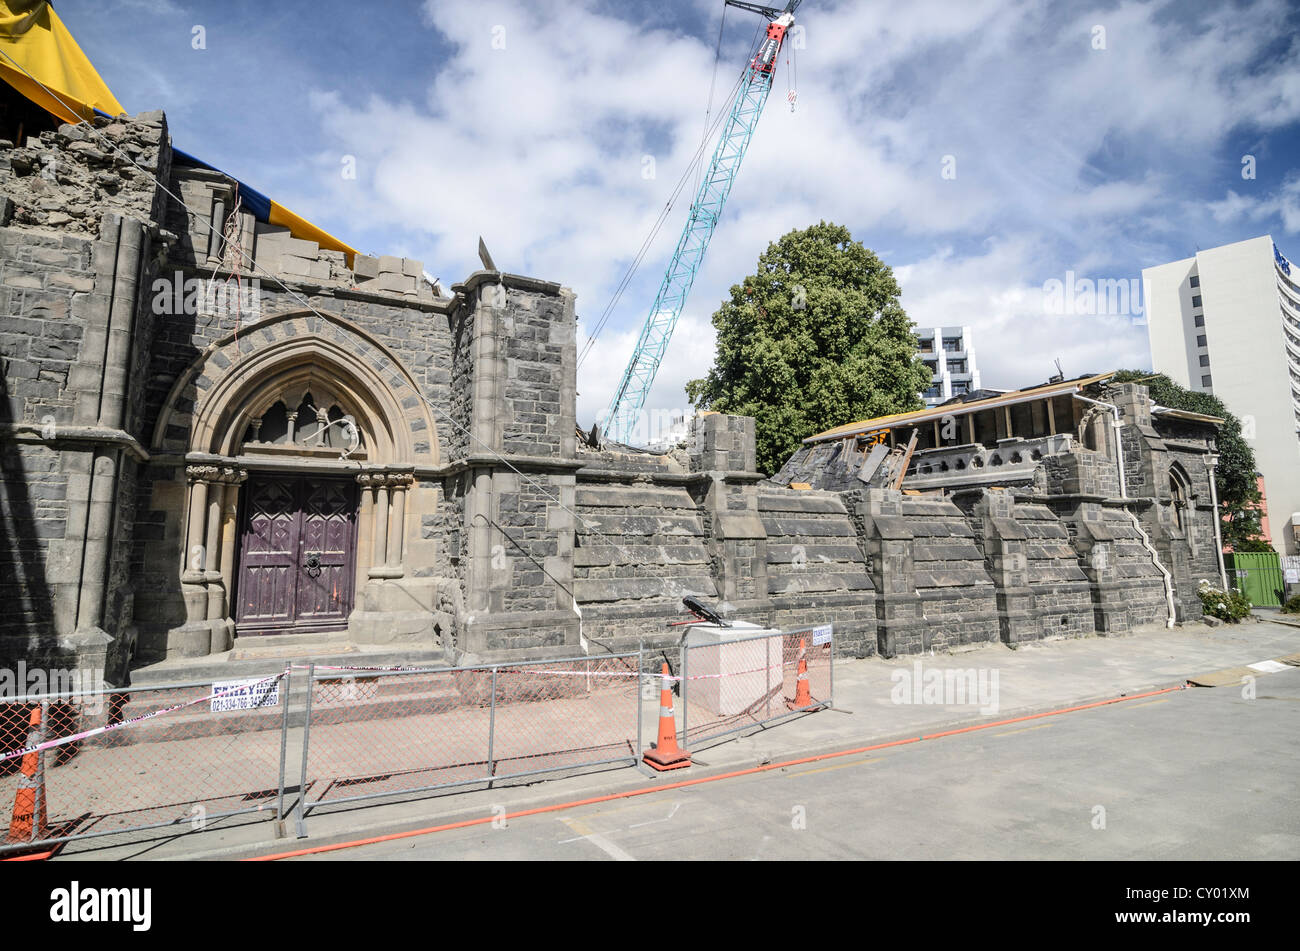 Earthquake damage to the landmark of Christchurch, South Island, New Zealand - Stock Image